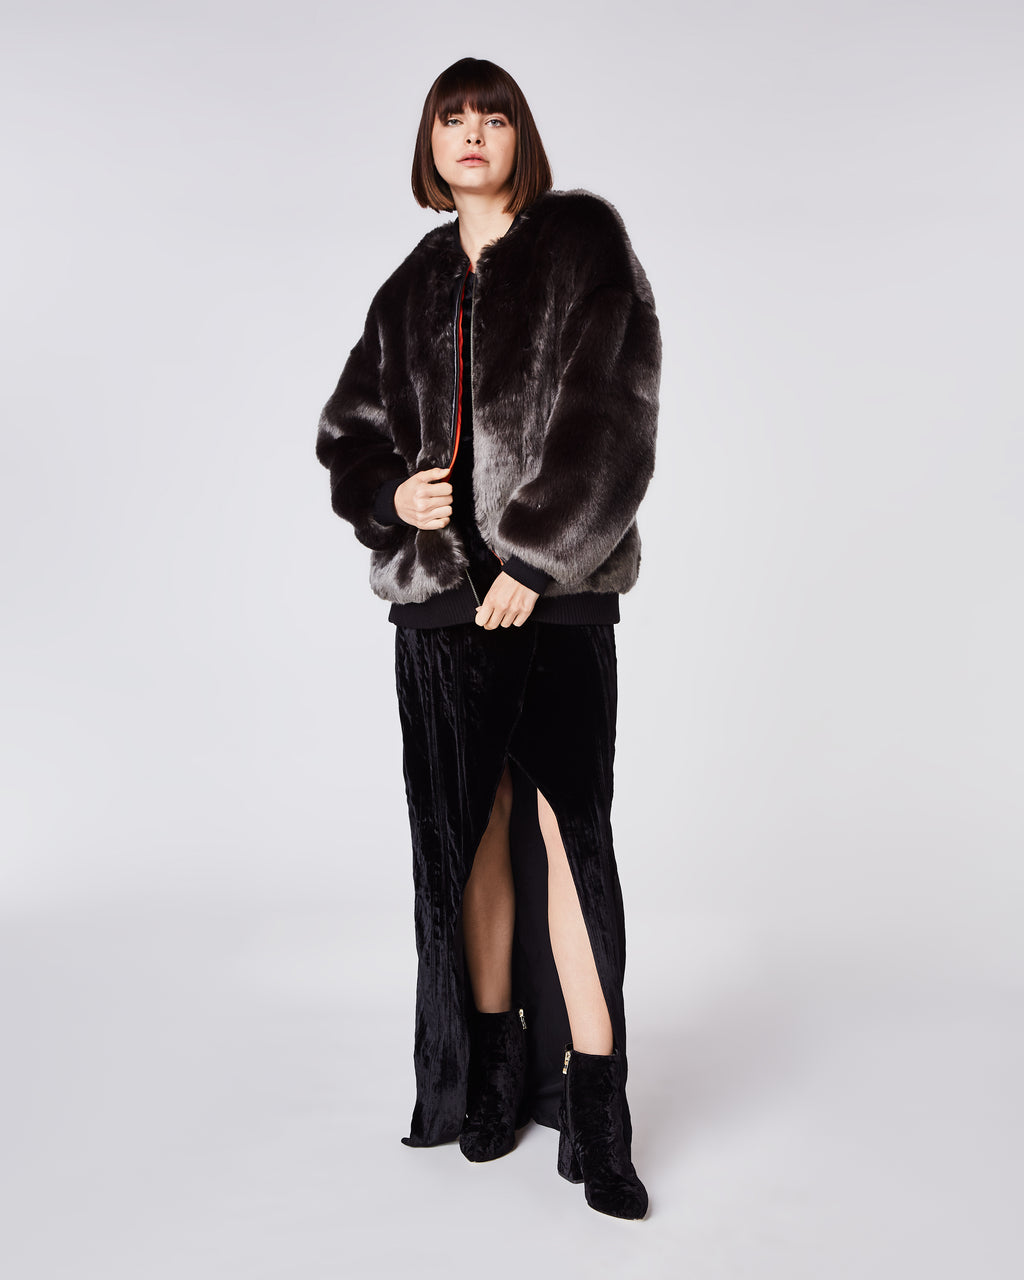 CO10118 - LUXE FAUX FUR BOMBER JACKET - outerwear - coats - In a smoky faux fur, this oversized bomber features a contrasting orange lining and elastic cuffs. Finished with an exposed zipper for closureand fully lined. Jacket is meant to fit oversized.For a more fitted fit, please order one size down.